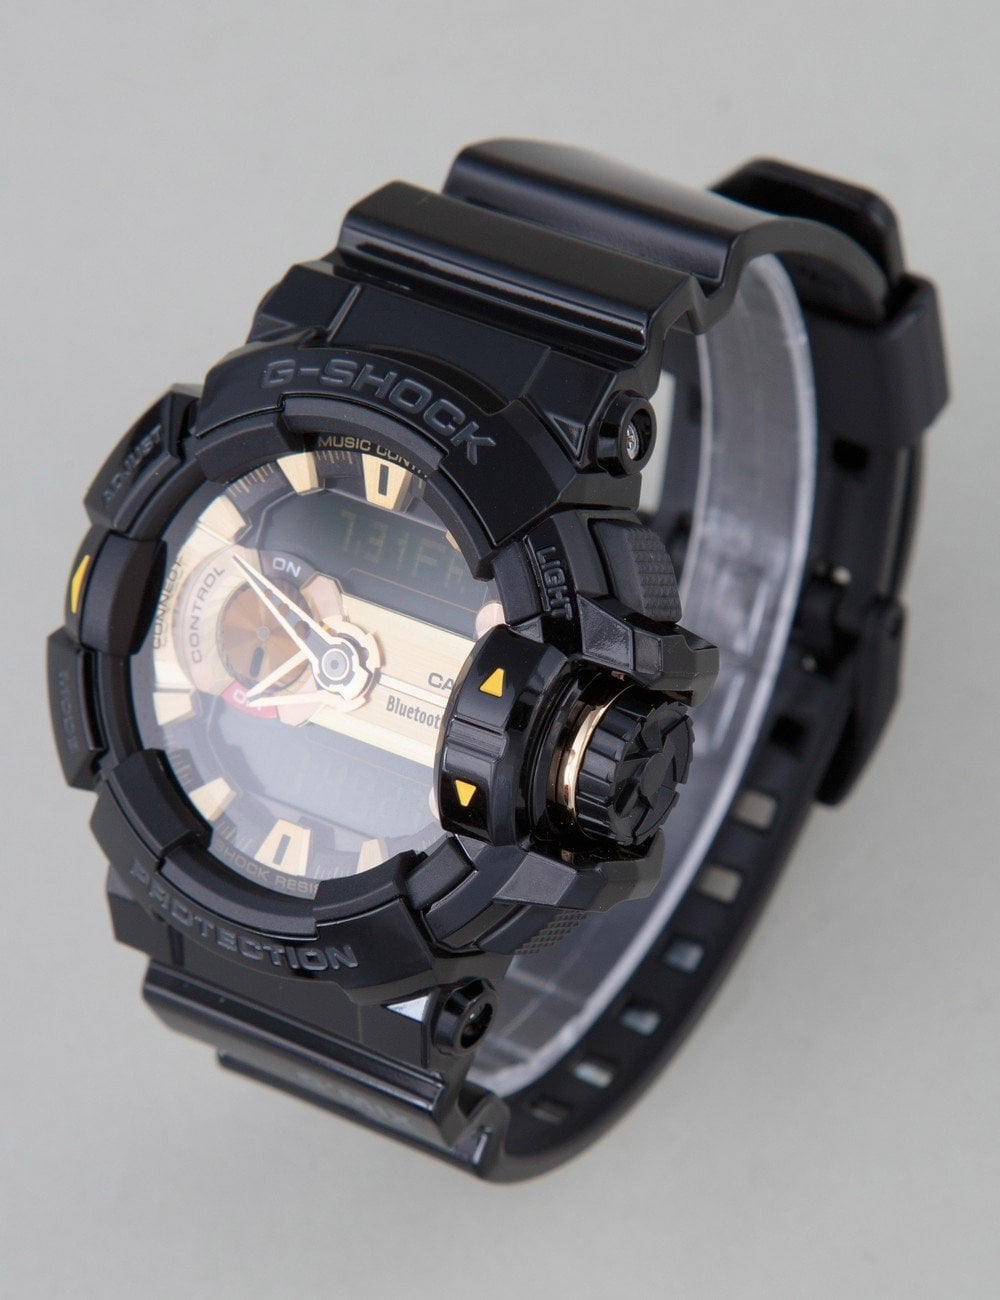 on sale 53f85 826df GBA-400-1A9ER Watch - Black/Gold